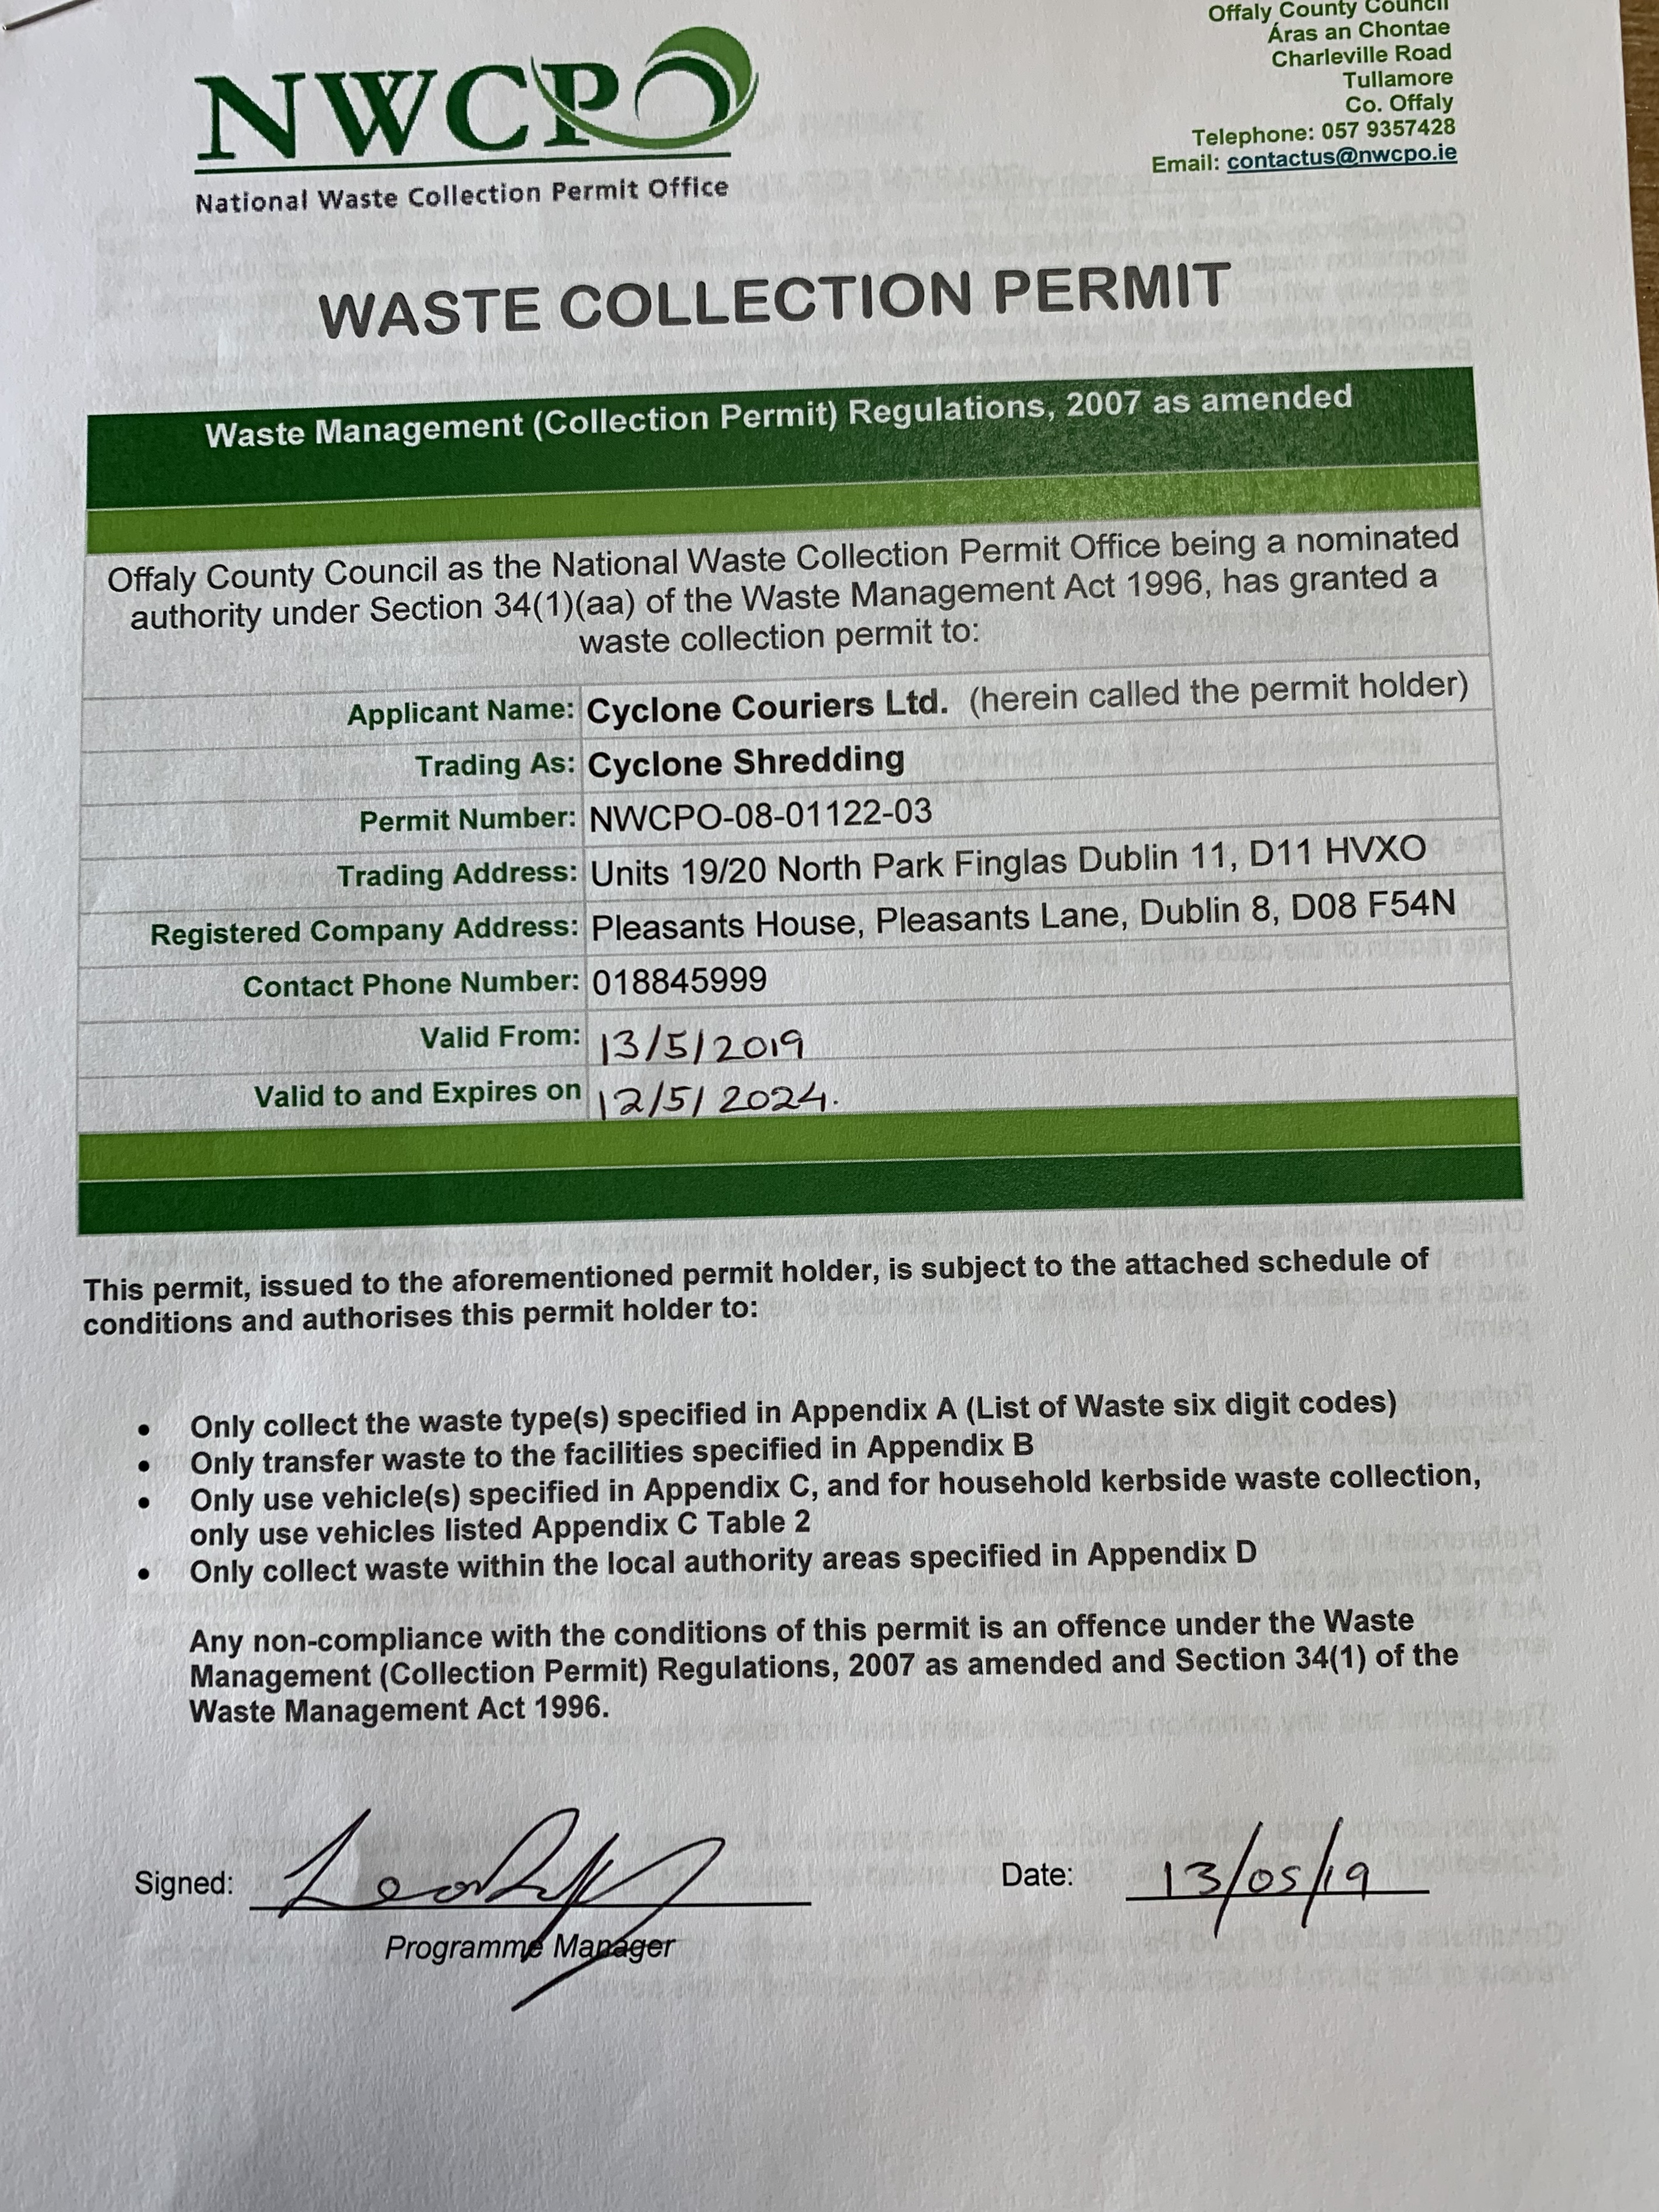 National Waste Collection Permit Office